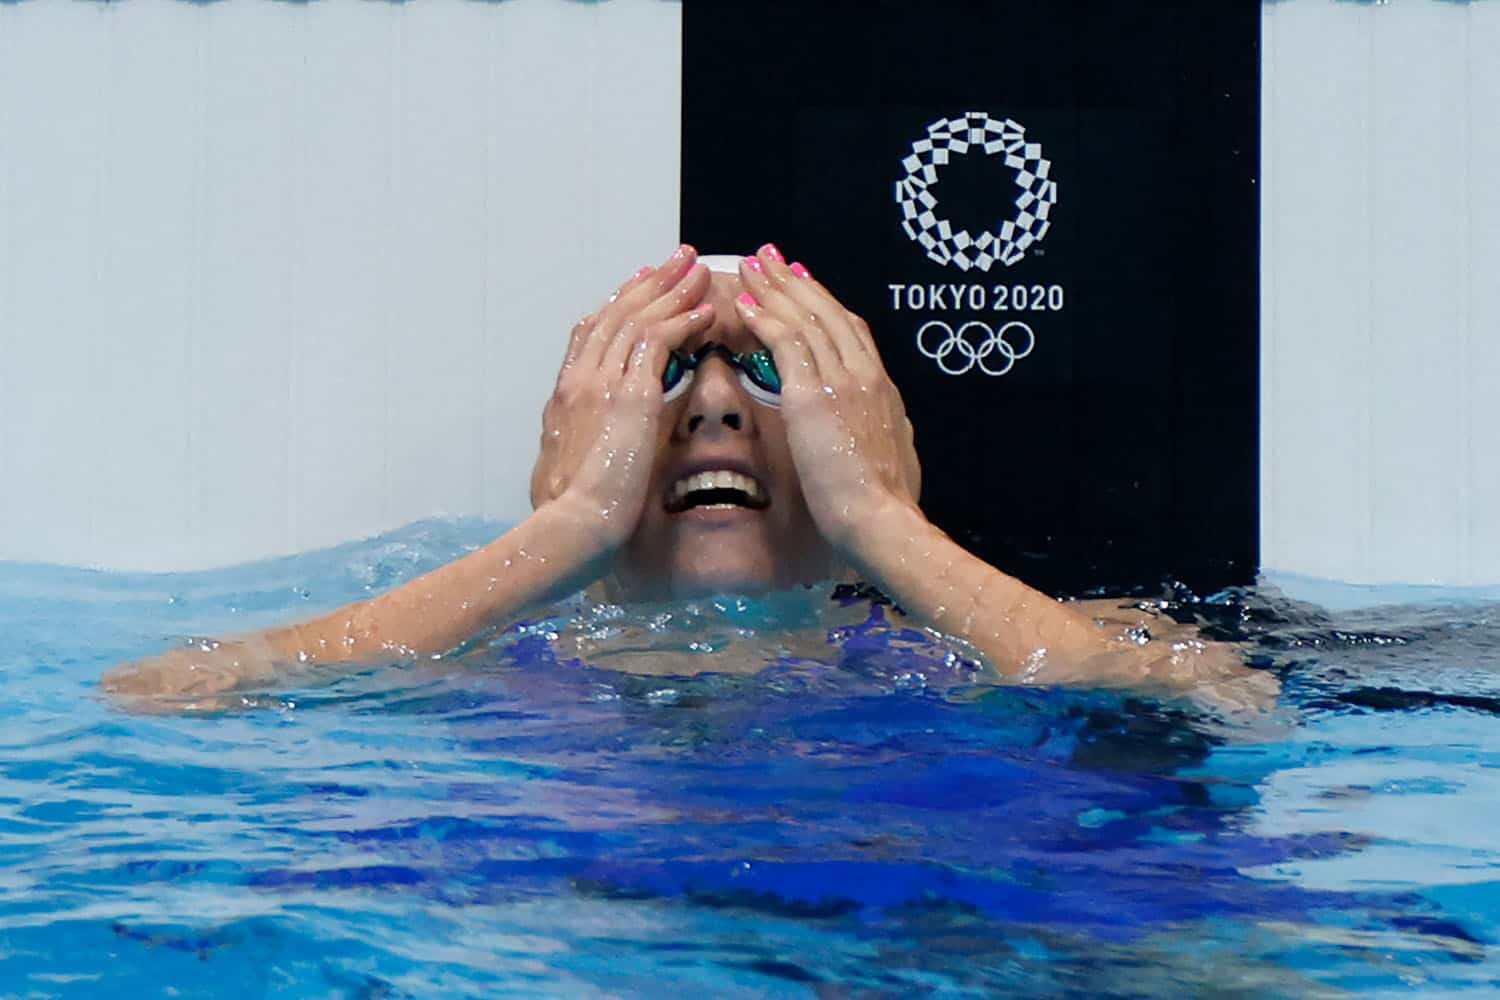 South Africa's Tatjana Schoenmaker reacts after breaking an Olympic Record in a heat for the women's 100m breaststroke swimming event during the Tokyo 2020 Olympic Games at the Tokyo Aquatics Centre in Tokyo on July 25, 2021. (Photo by Odd ANDERSEN / AFP)